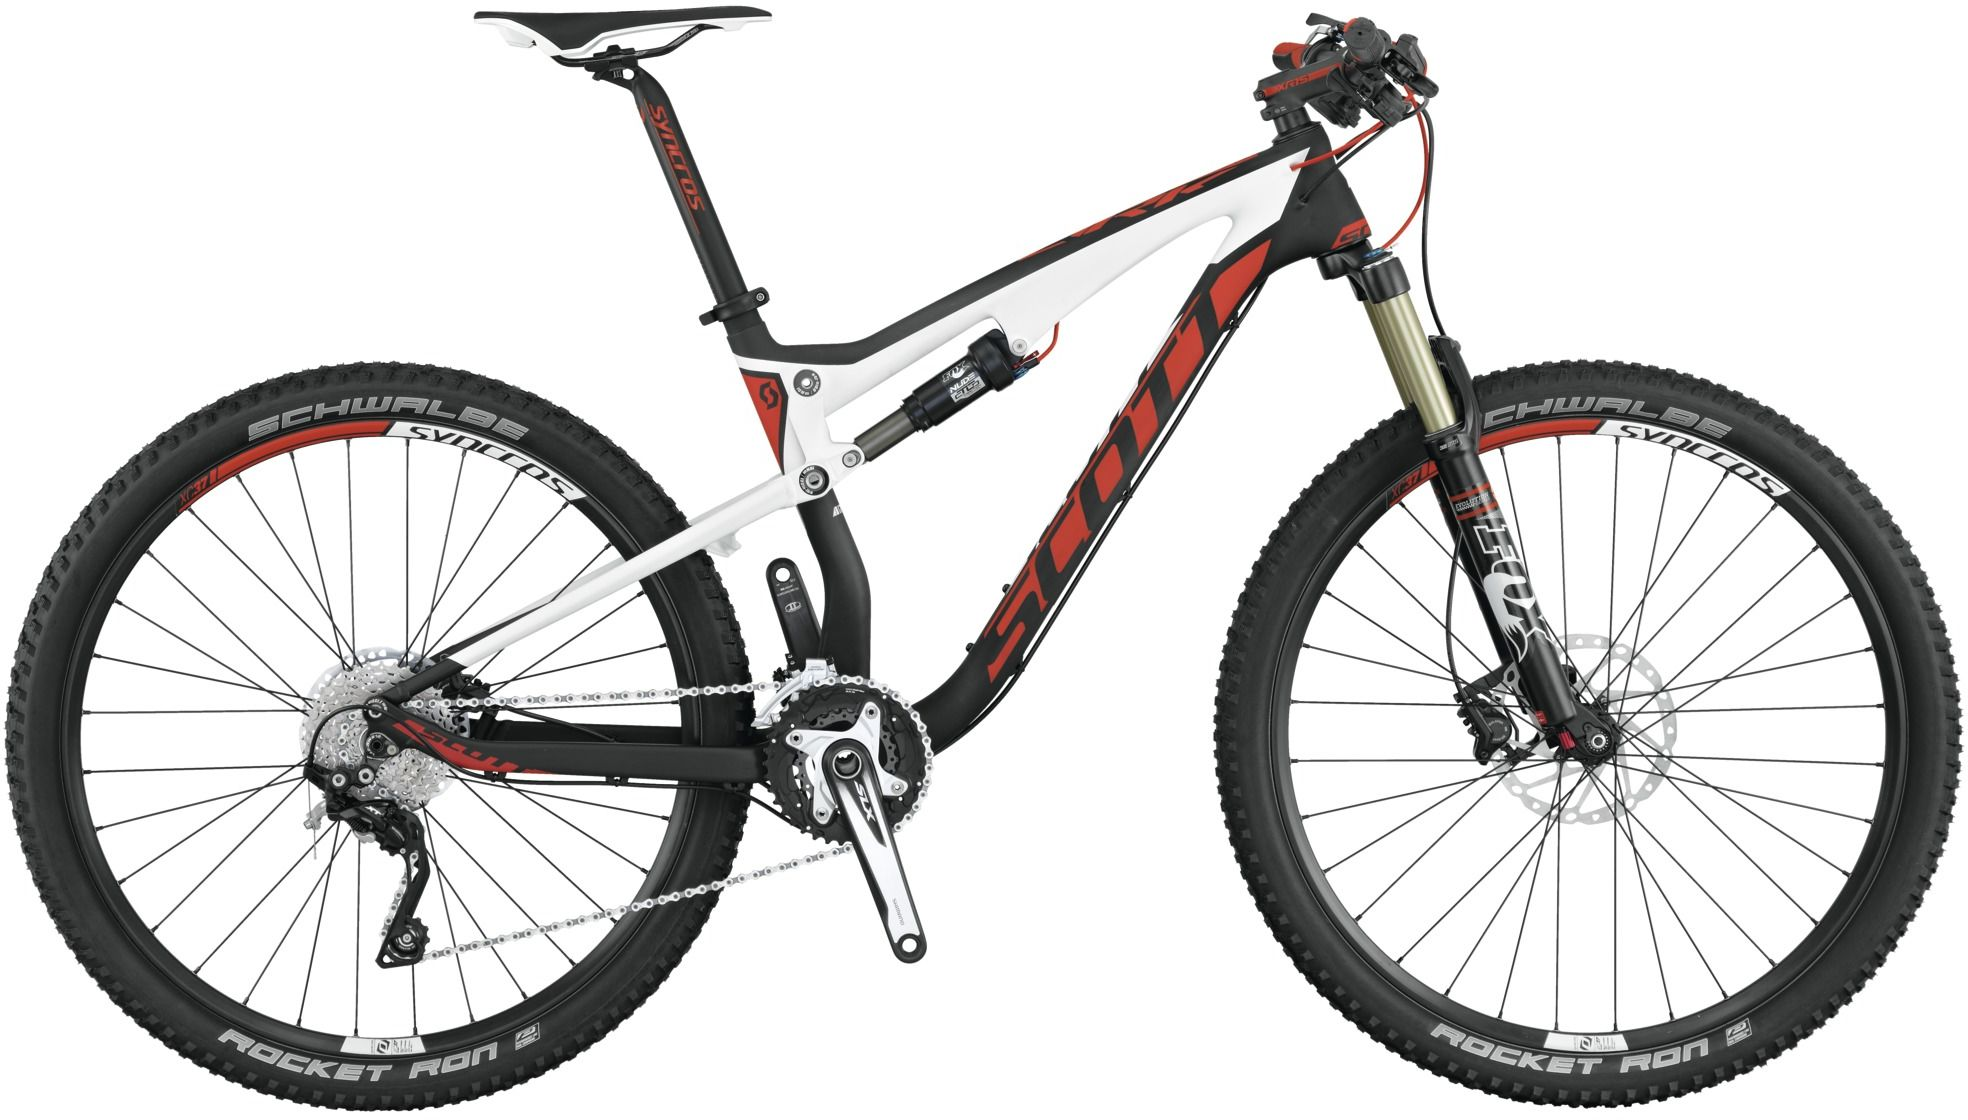 9488175fc5a Scott Spark 730 2015 review - The Bike List